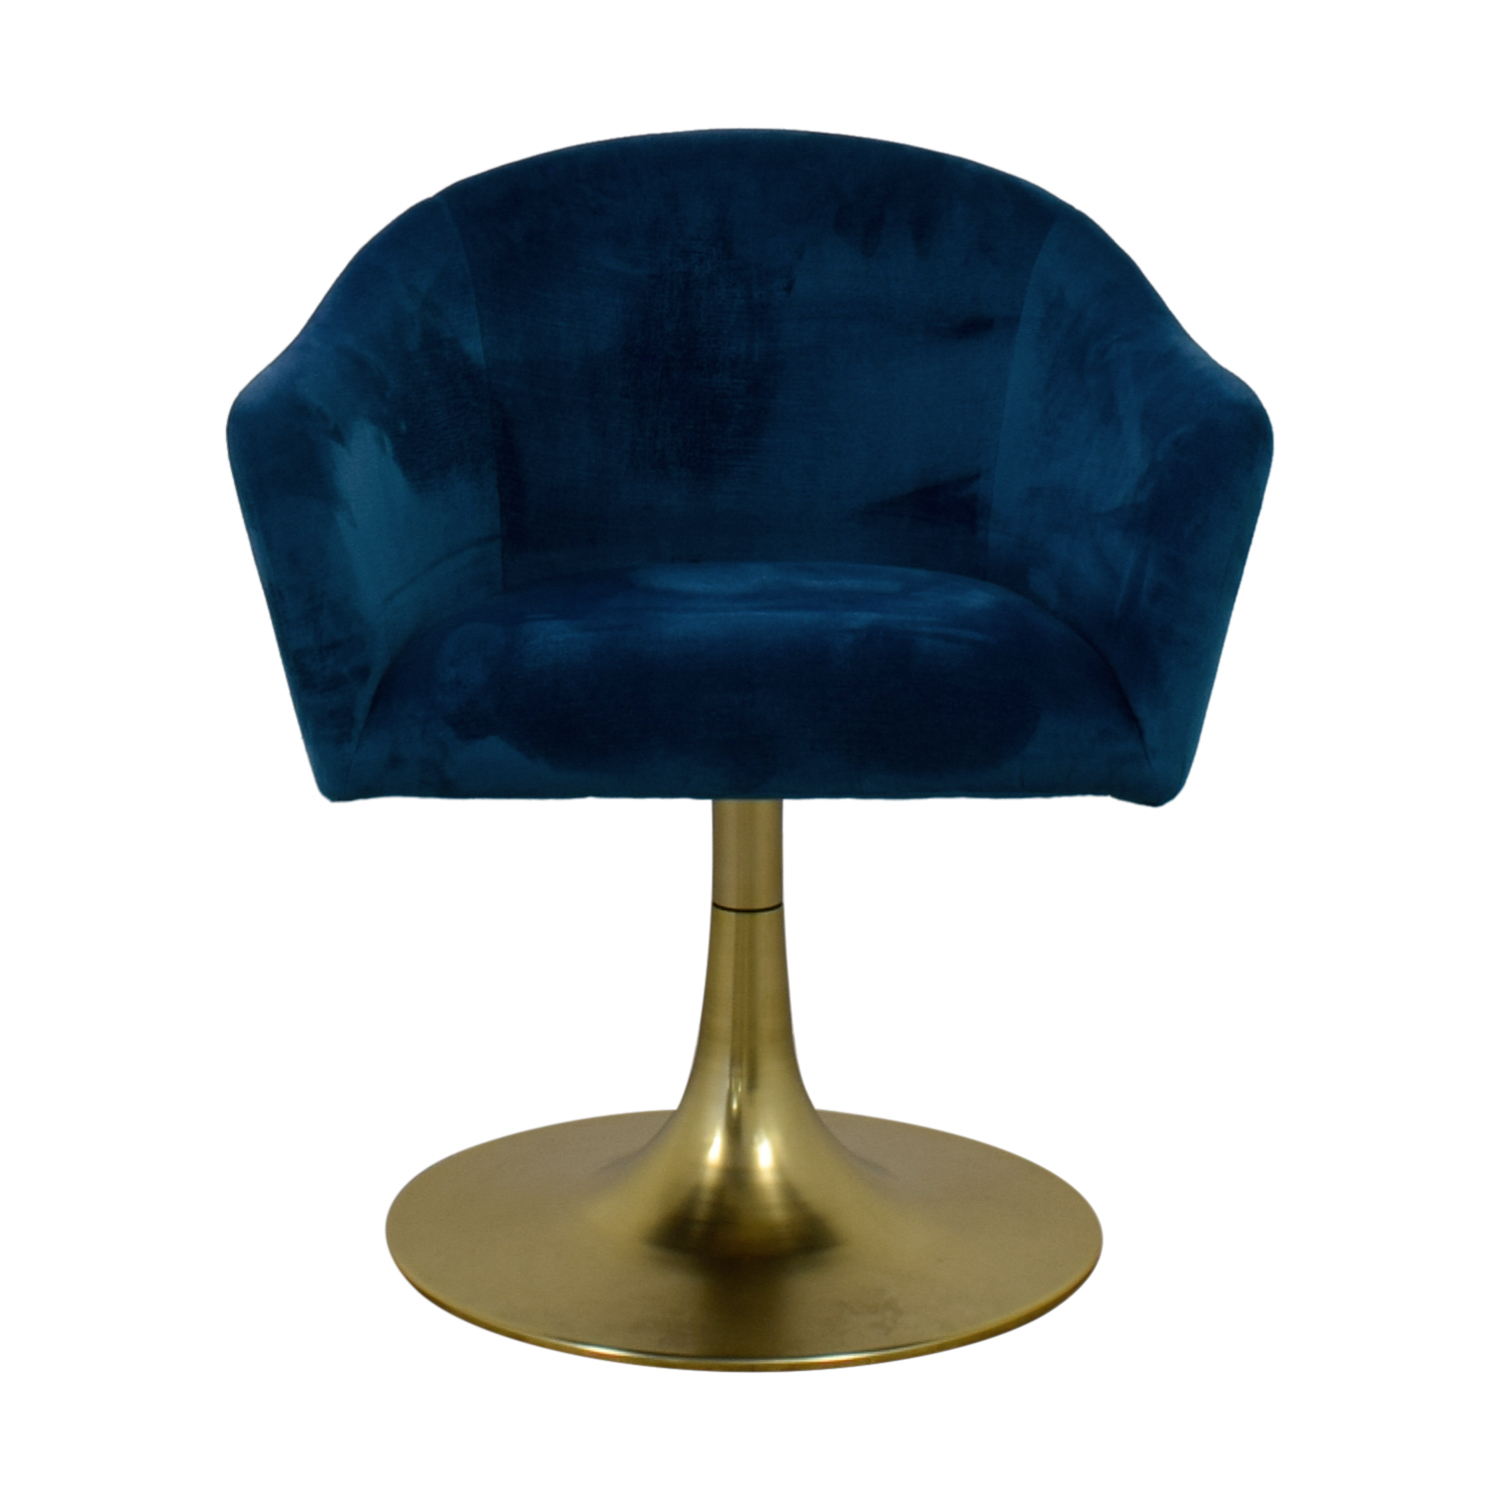 West Elm West Elm Bond Blue Velvet Swivel Chair nyc